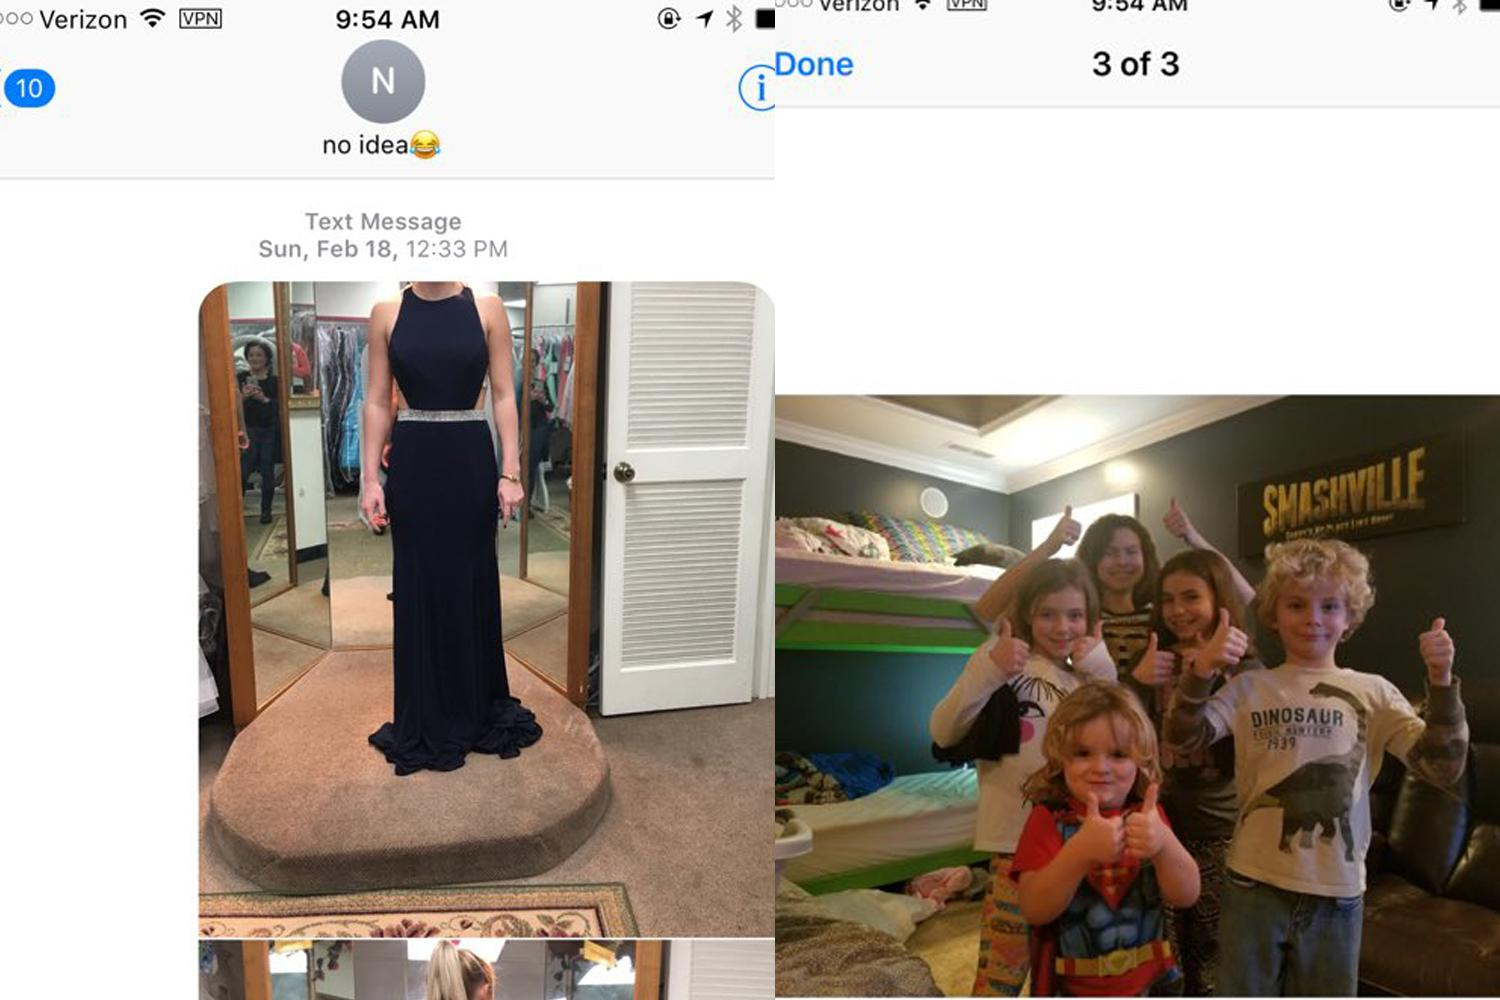 A young woman asking for an opinion on her dress texted the wrong number. A father of 6 received the text and responded to her. Here's how it's already changing the life of his little boy with leukemia